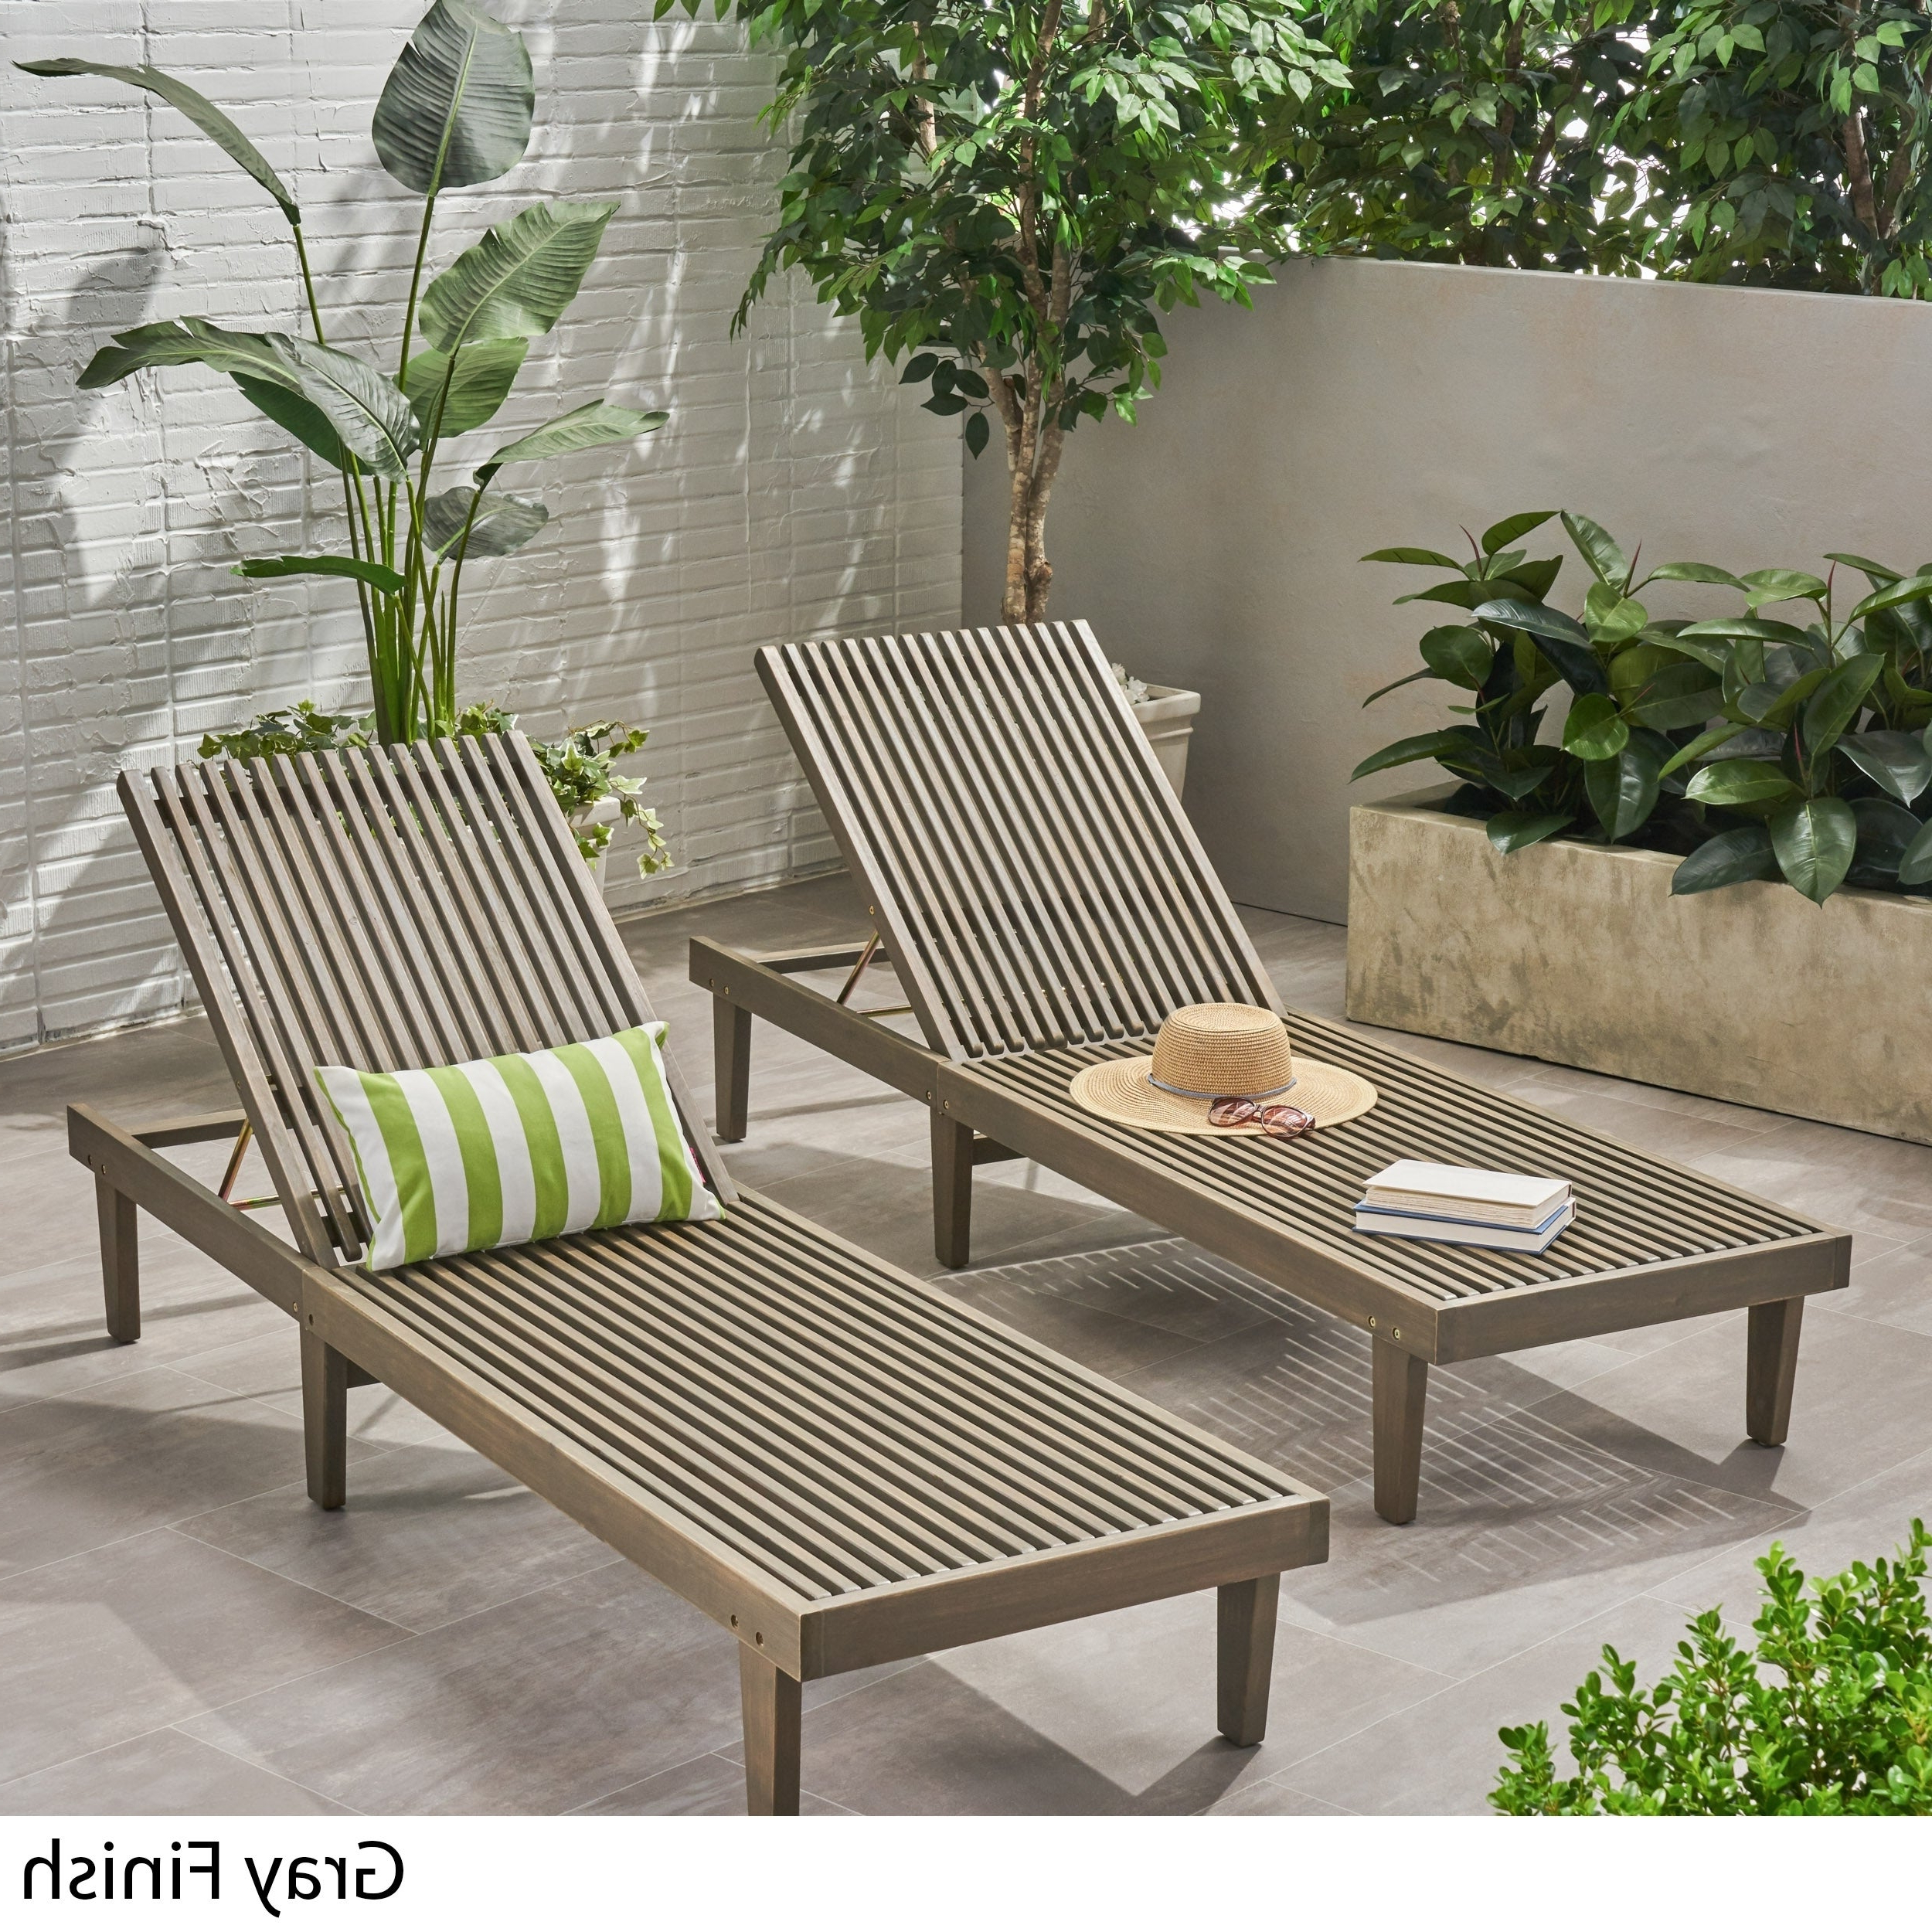 Widely Used Nadine Outdoor Adjustable Wood Chaise Lounge (Set Of 2)Christopher  Knight Home Within Havenside Home Ormond Outdoor Hardwood Sun Loungers With Tray (Gallery 22 of 25)